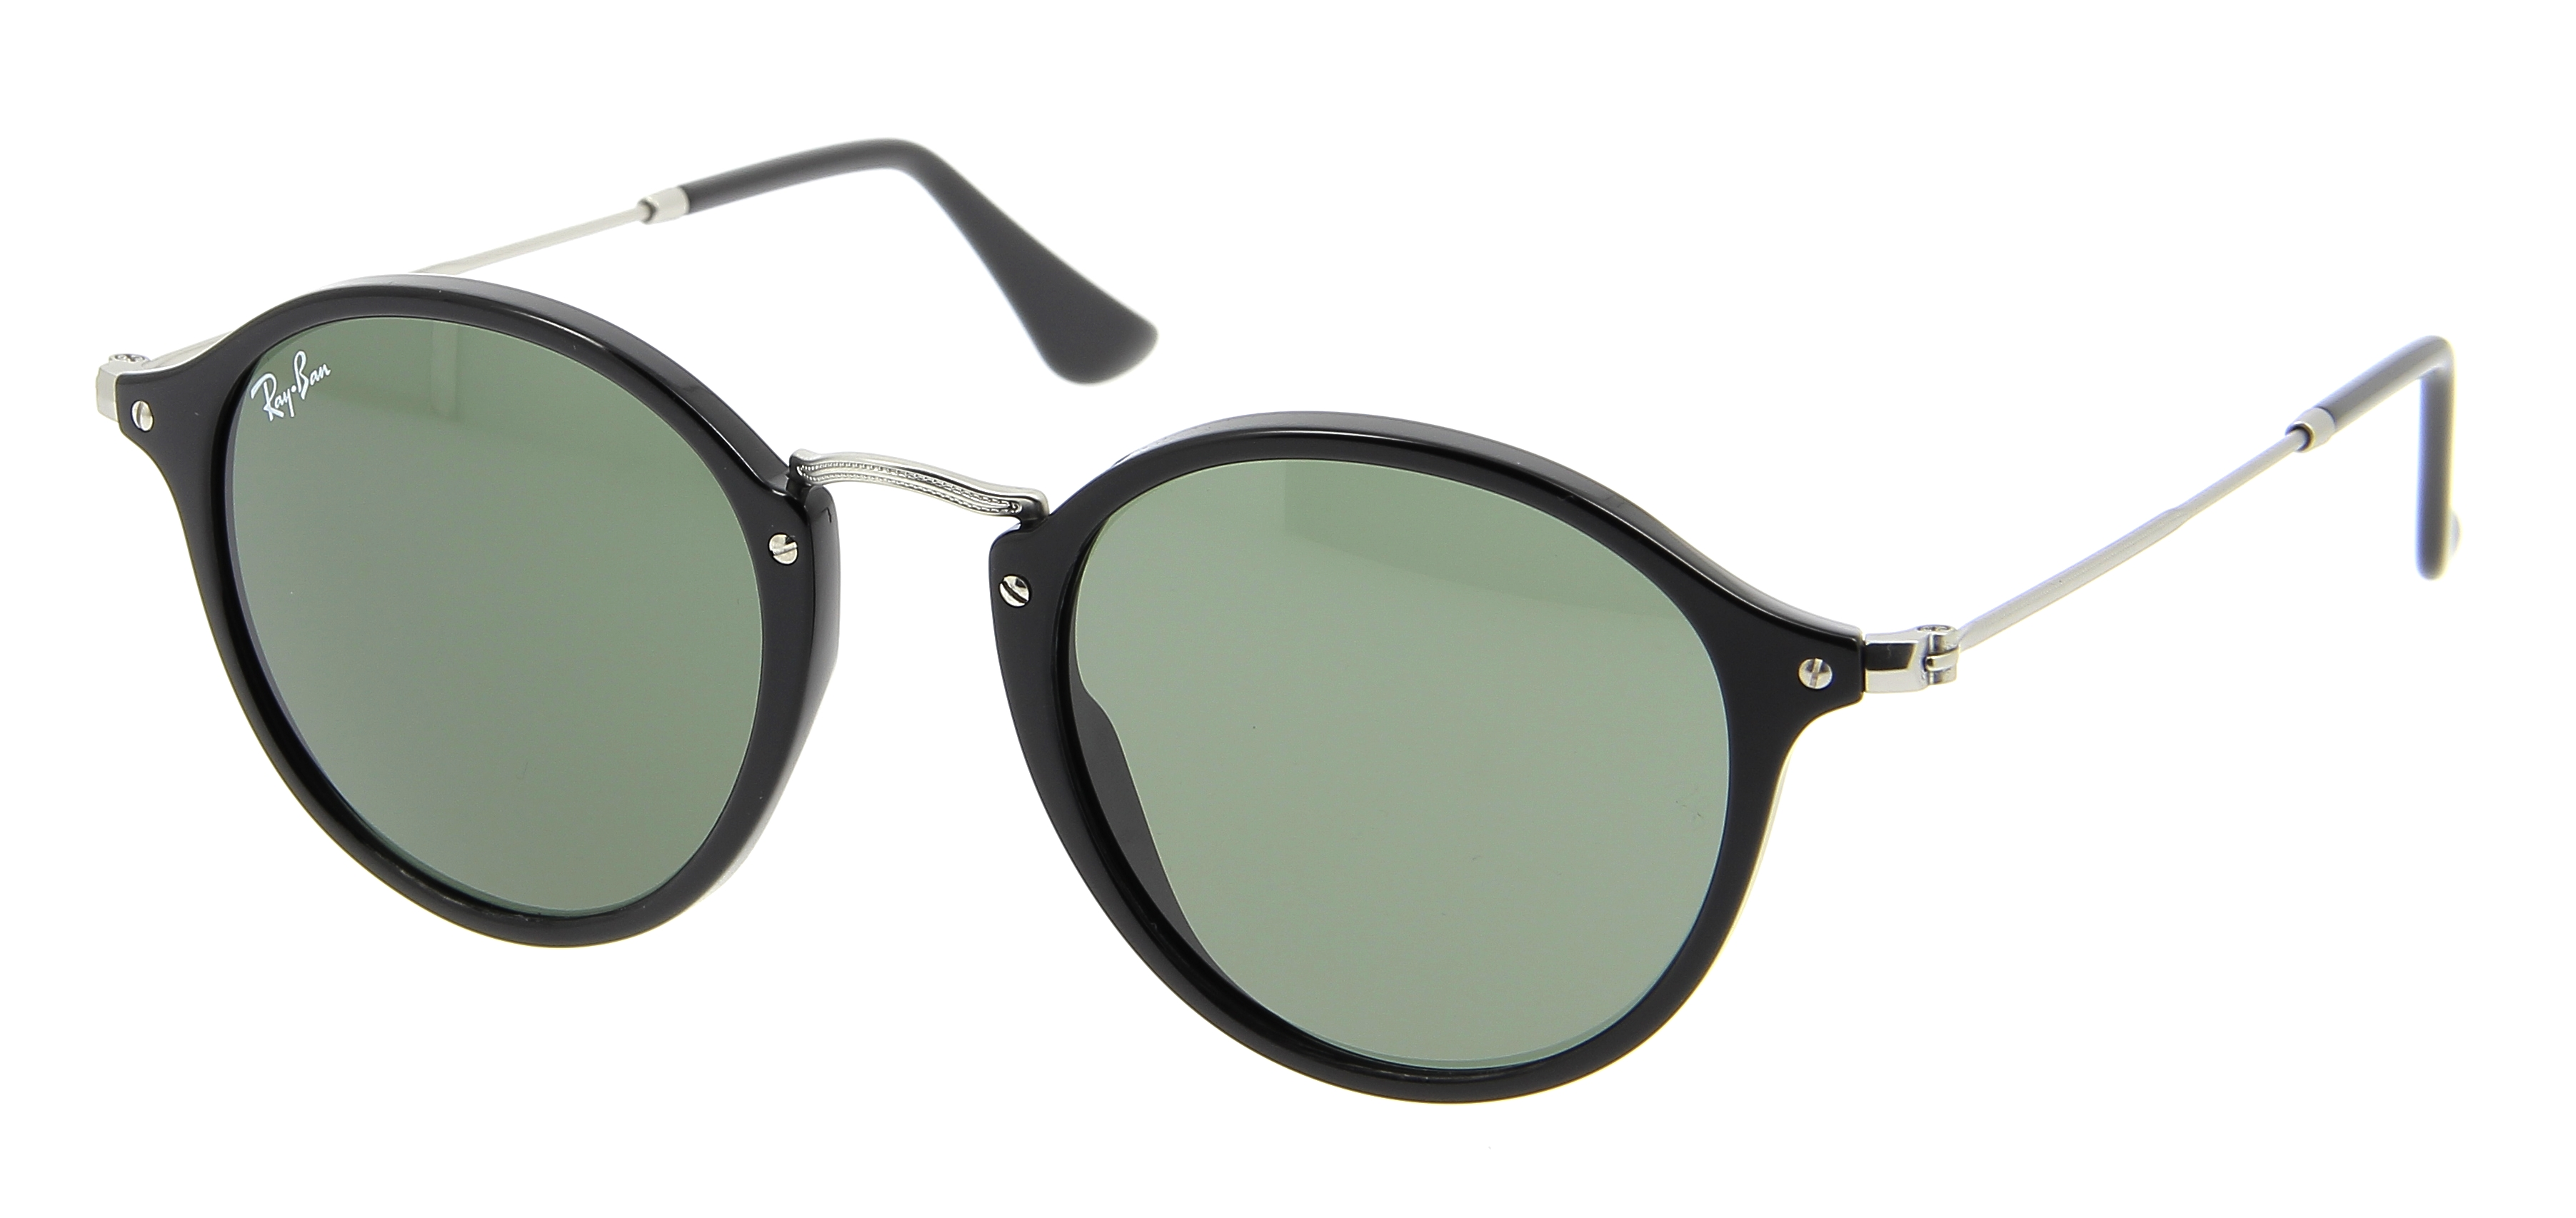 Lunette Ray Ban Optical Center. lunette de vue ray ban femme optical center b7c526f61597